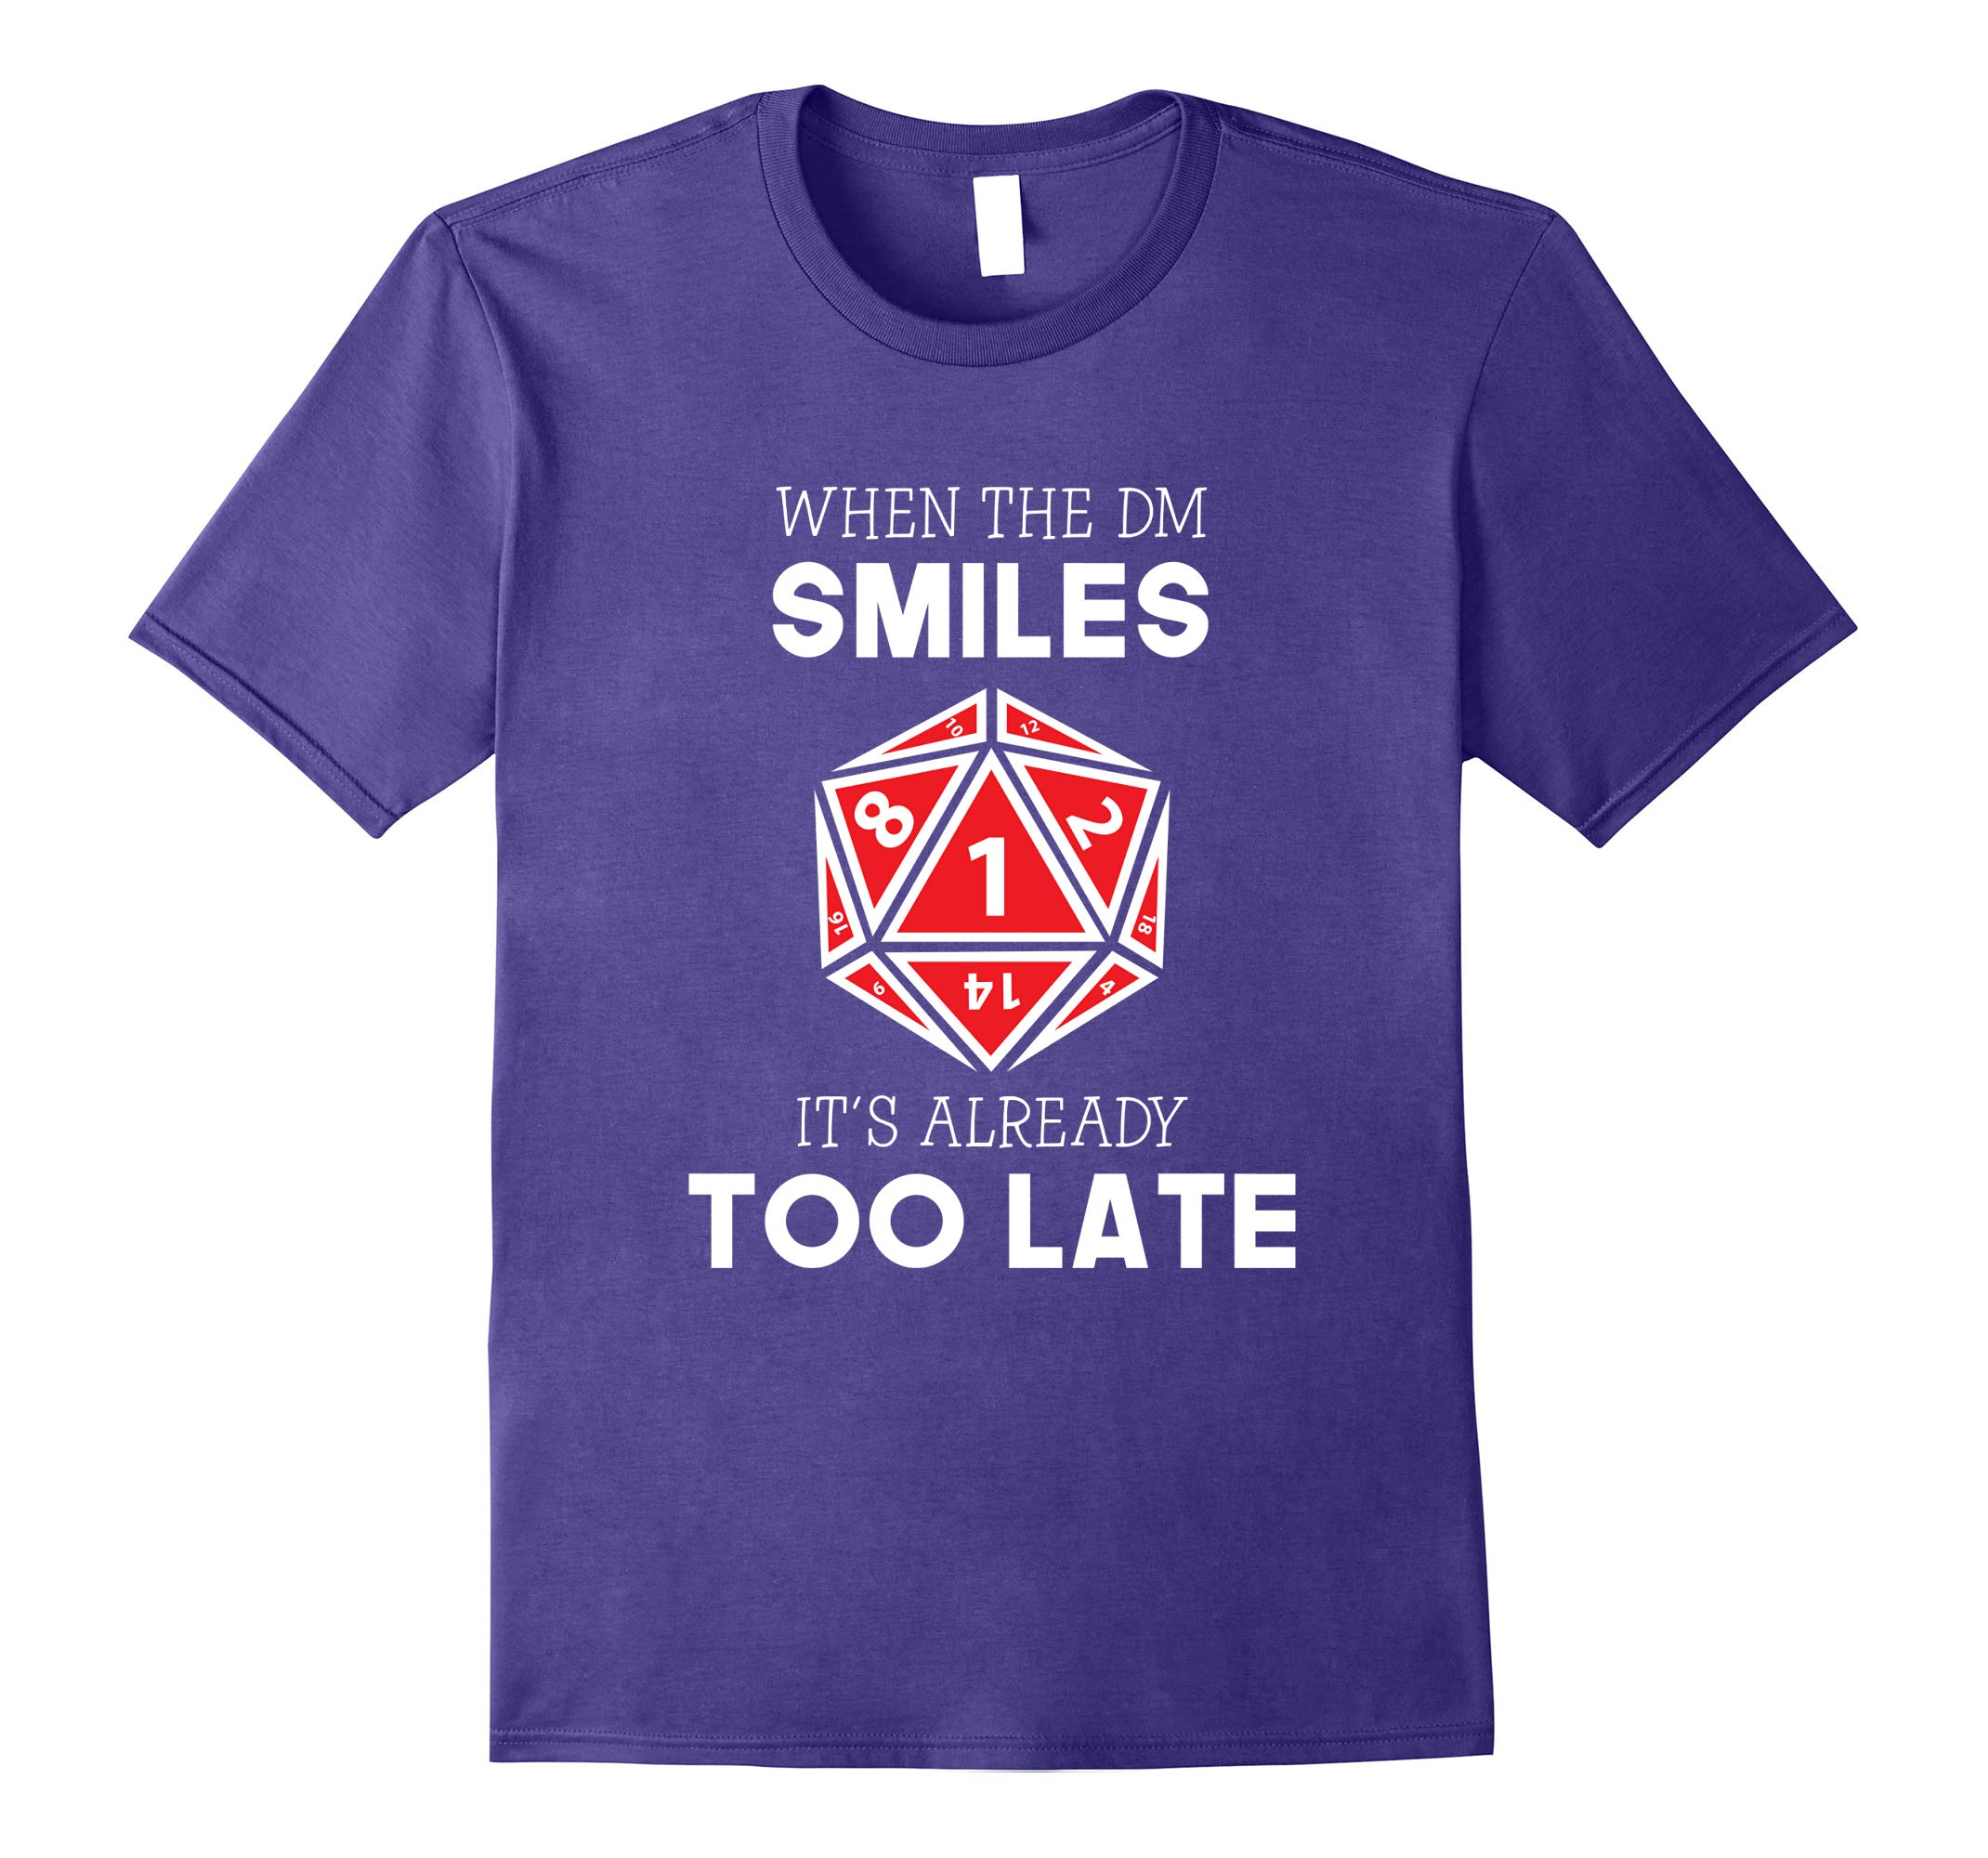 When the DM Smiles Shirts - Funny DND and Tabletop Shirts-RT